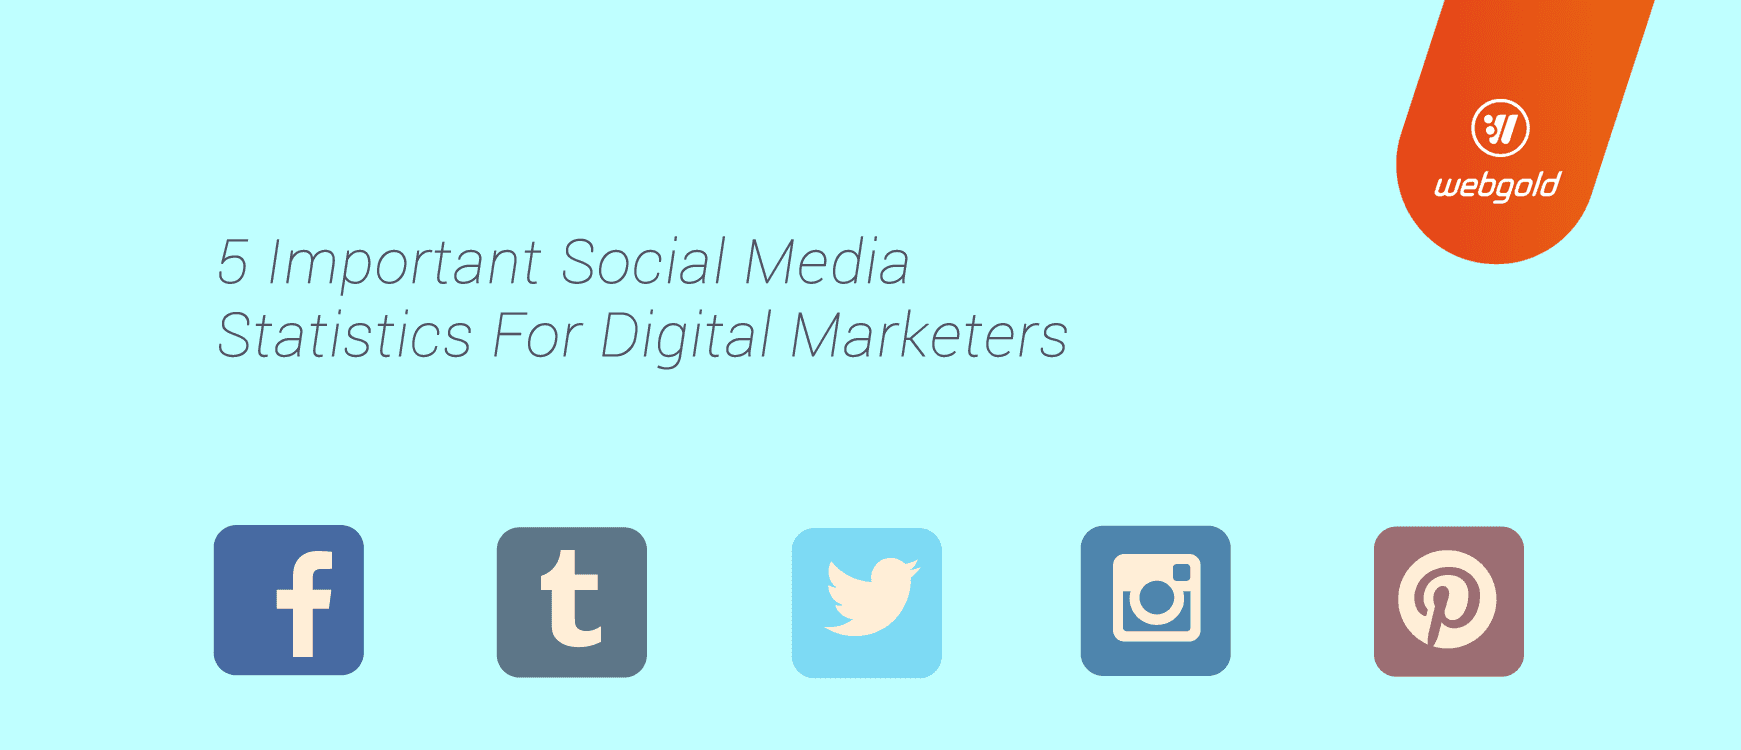 5 Important Social Media Statistics For Digital Marketers